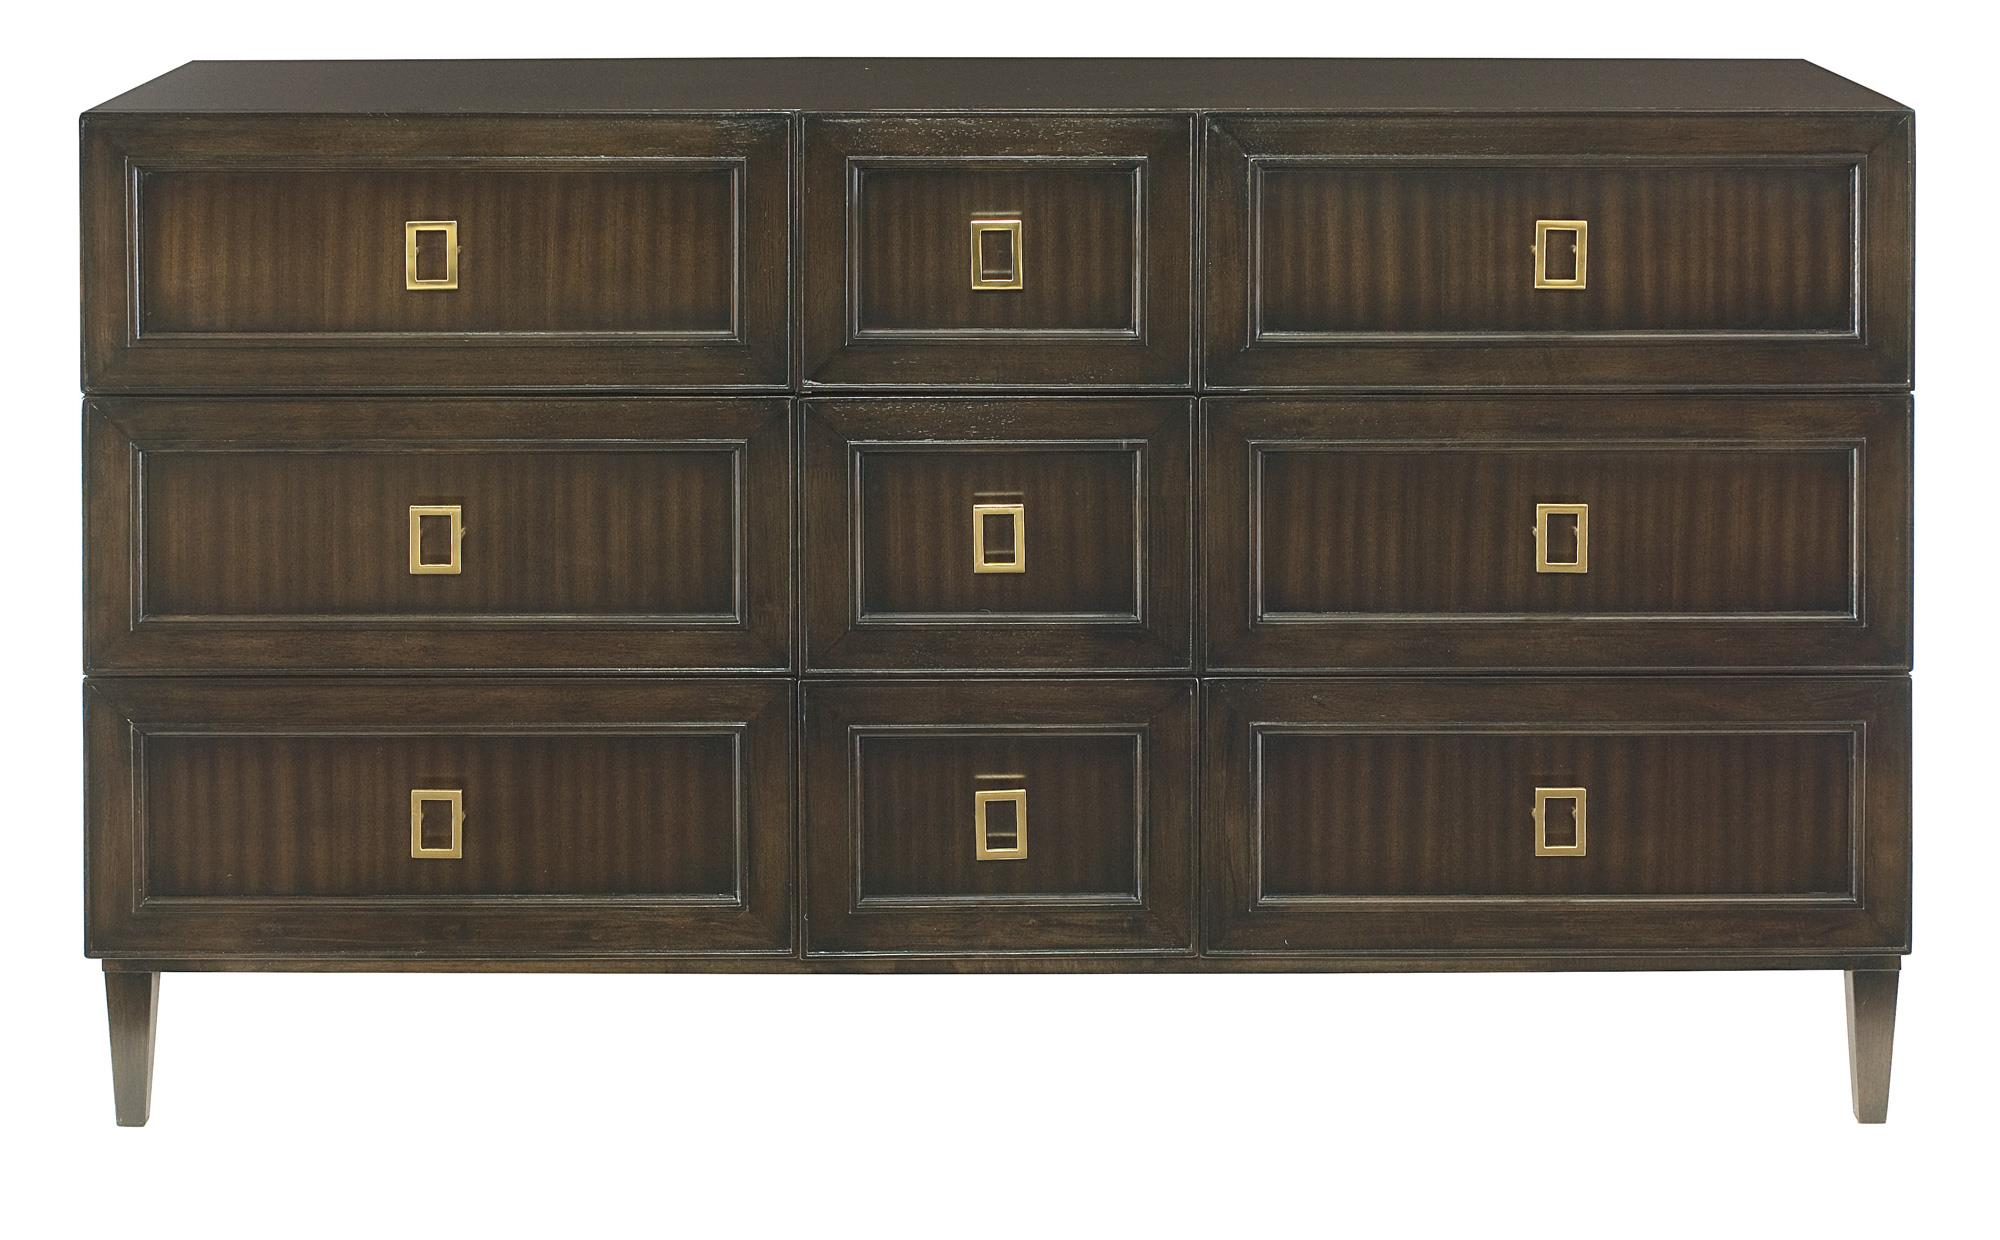 Bernhardt Soho Soho 9 Drawer Dresser - Item Number: 356-053